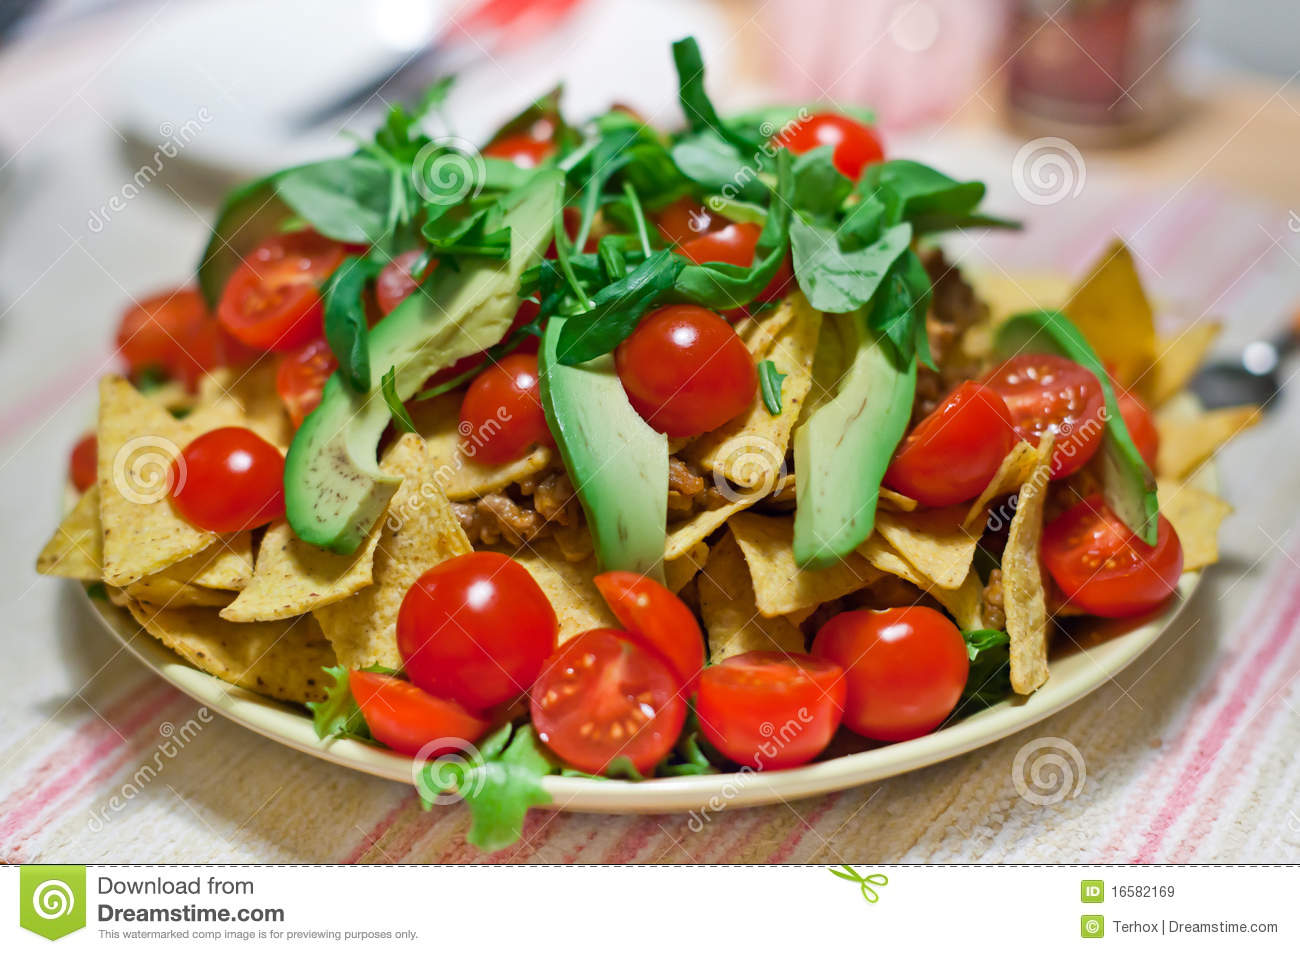 Overfilled Plate Of Food Royalty Free Stock Images   Image  16582169